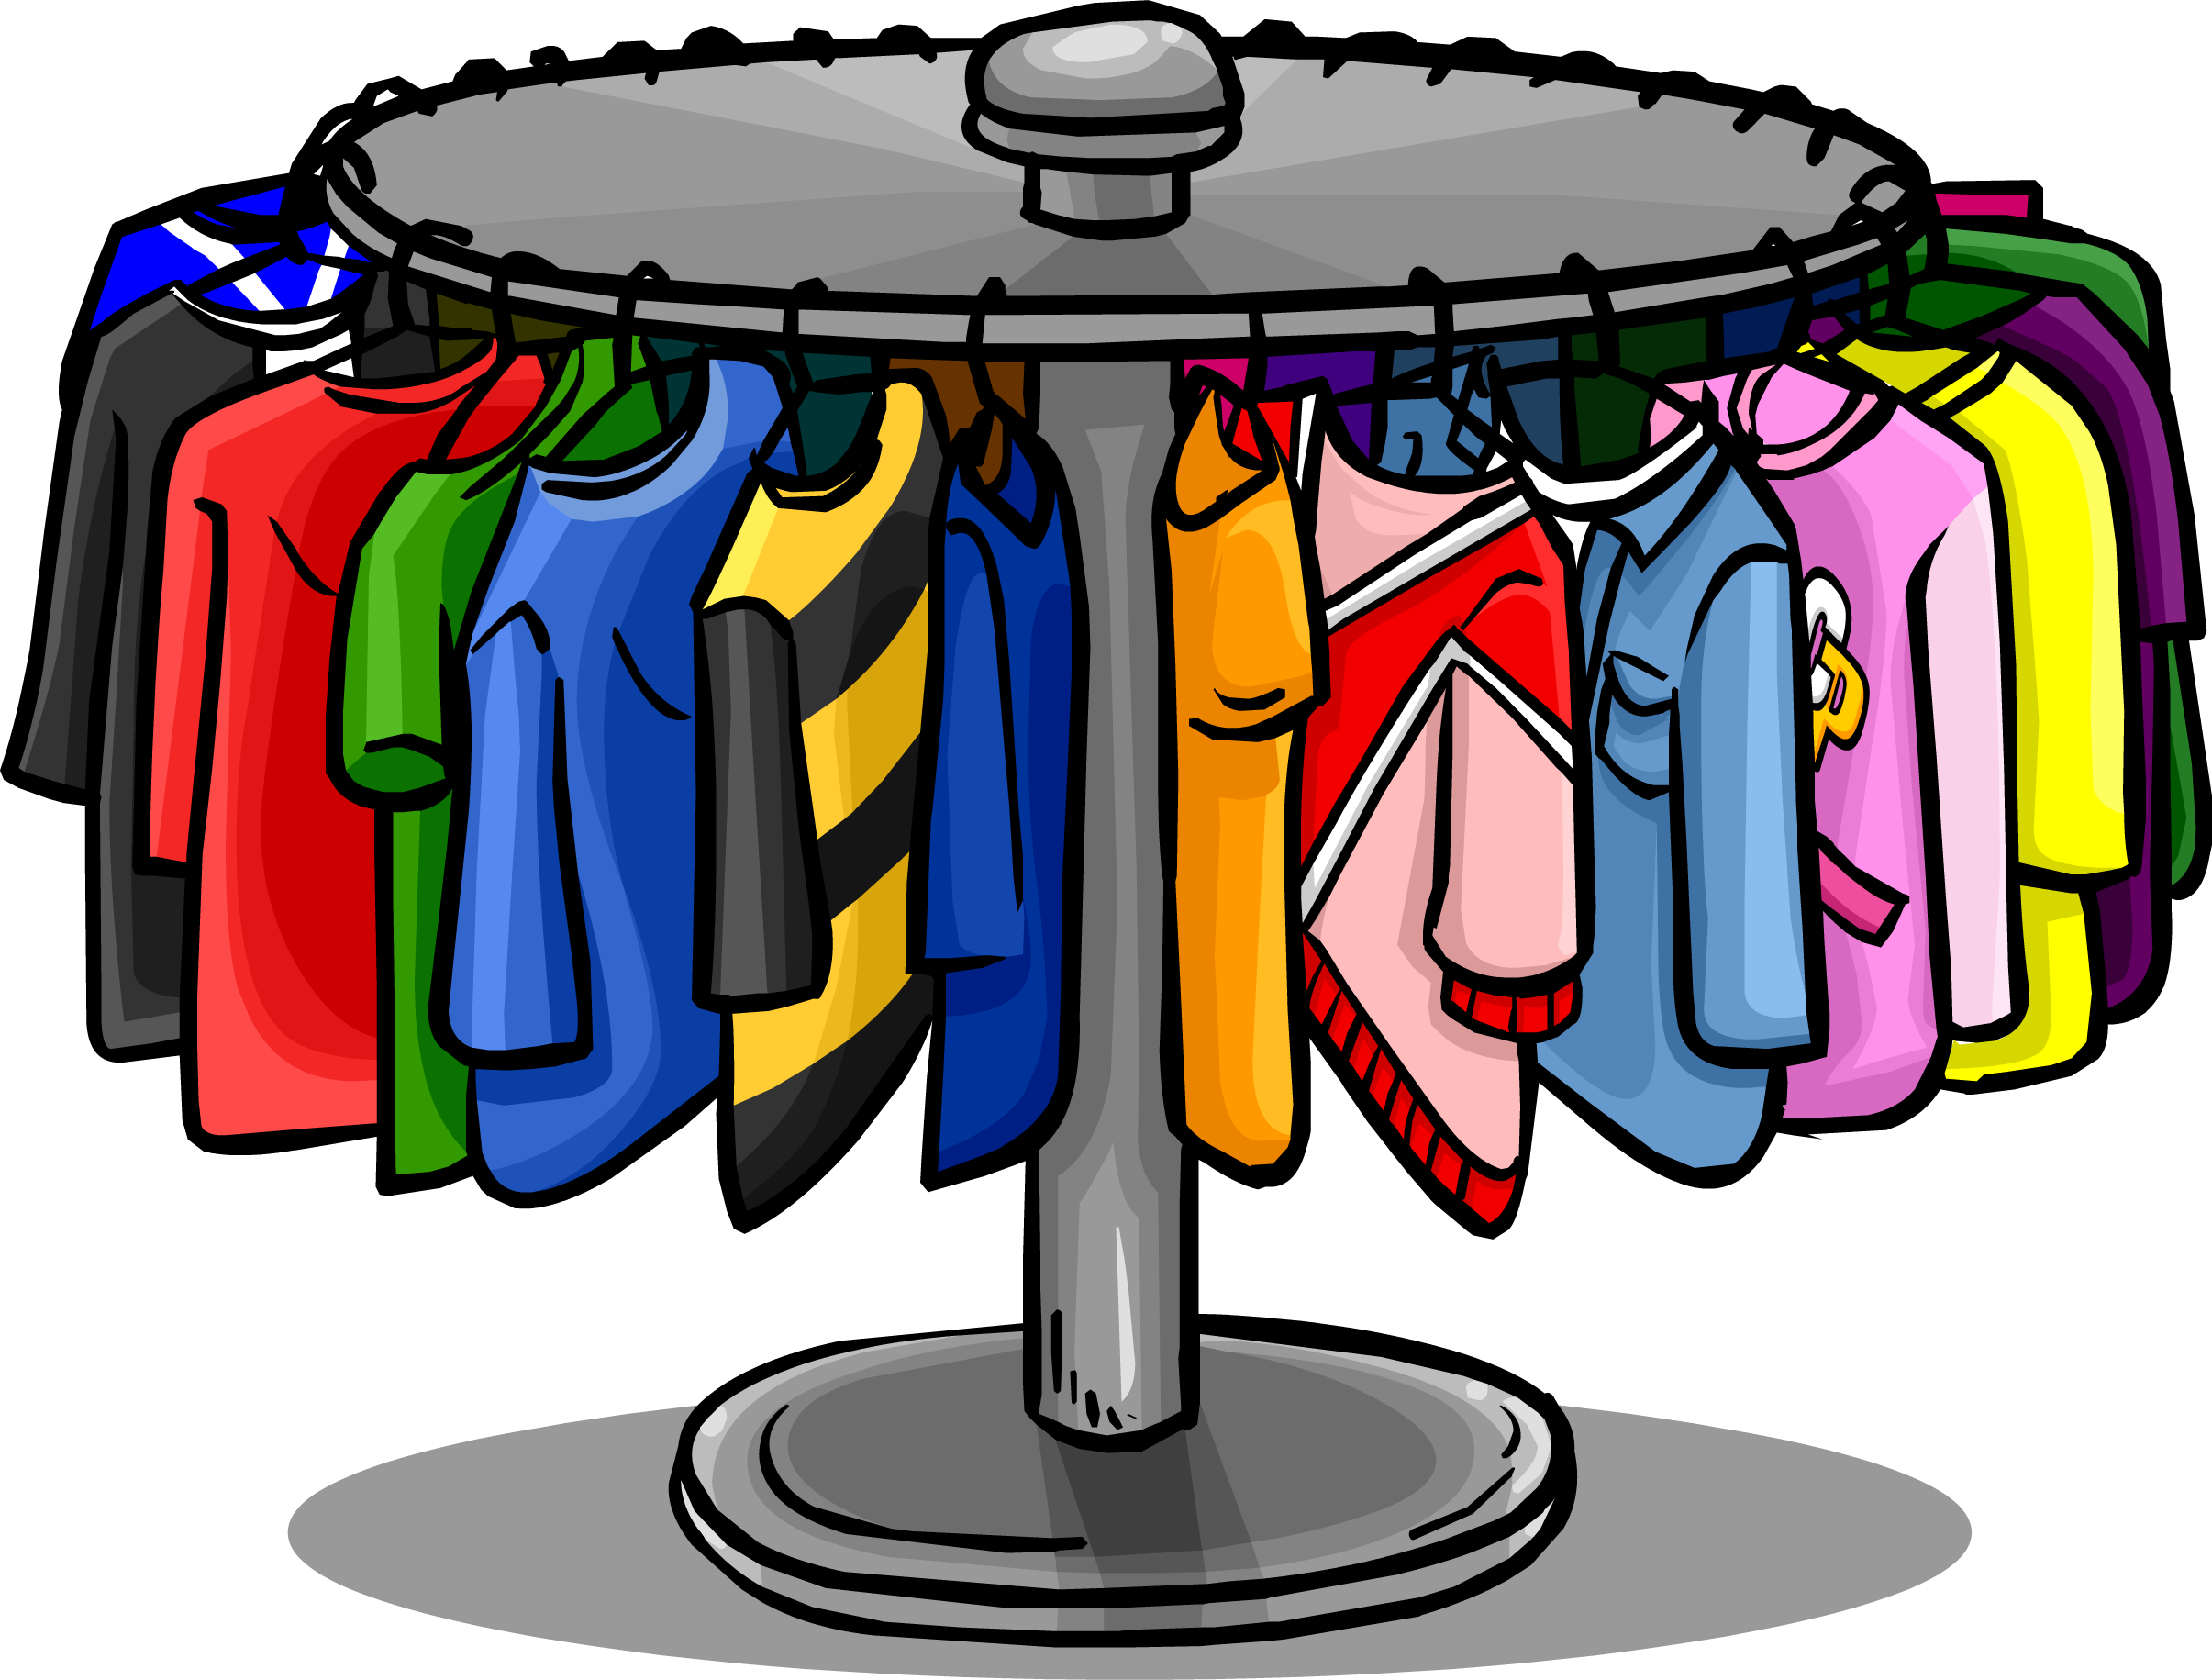 Clothing Sale Clipart Kid-Clothing sale clipart kid-18